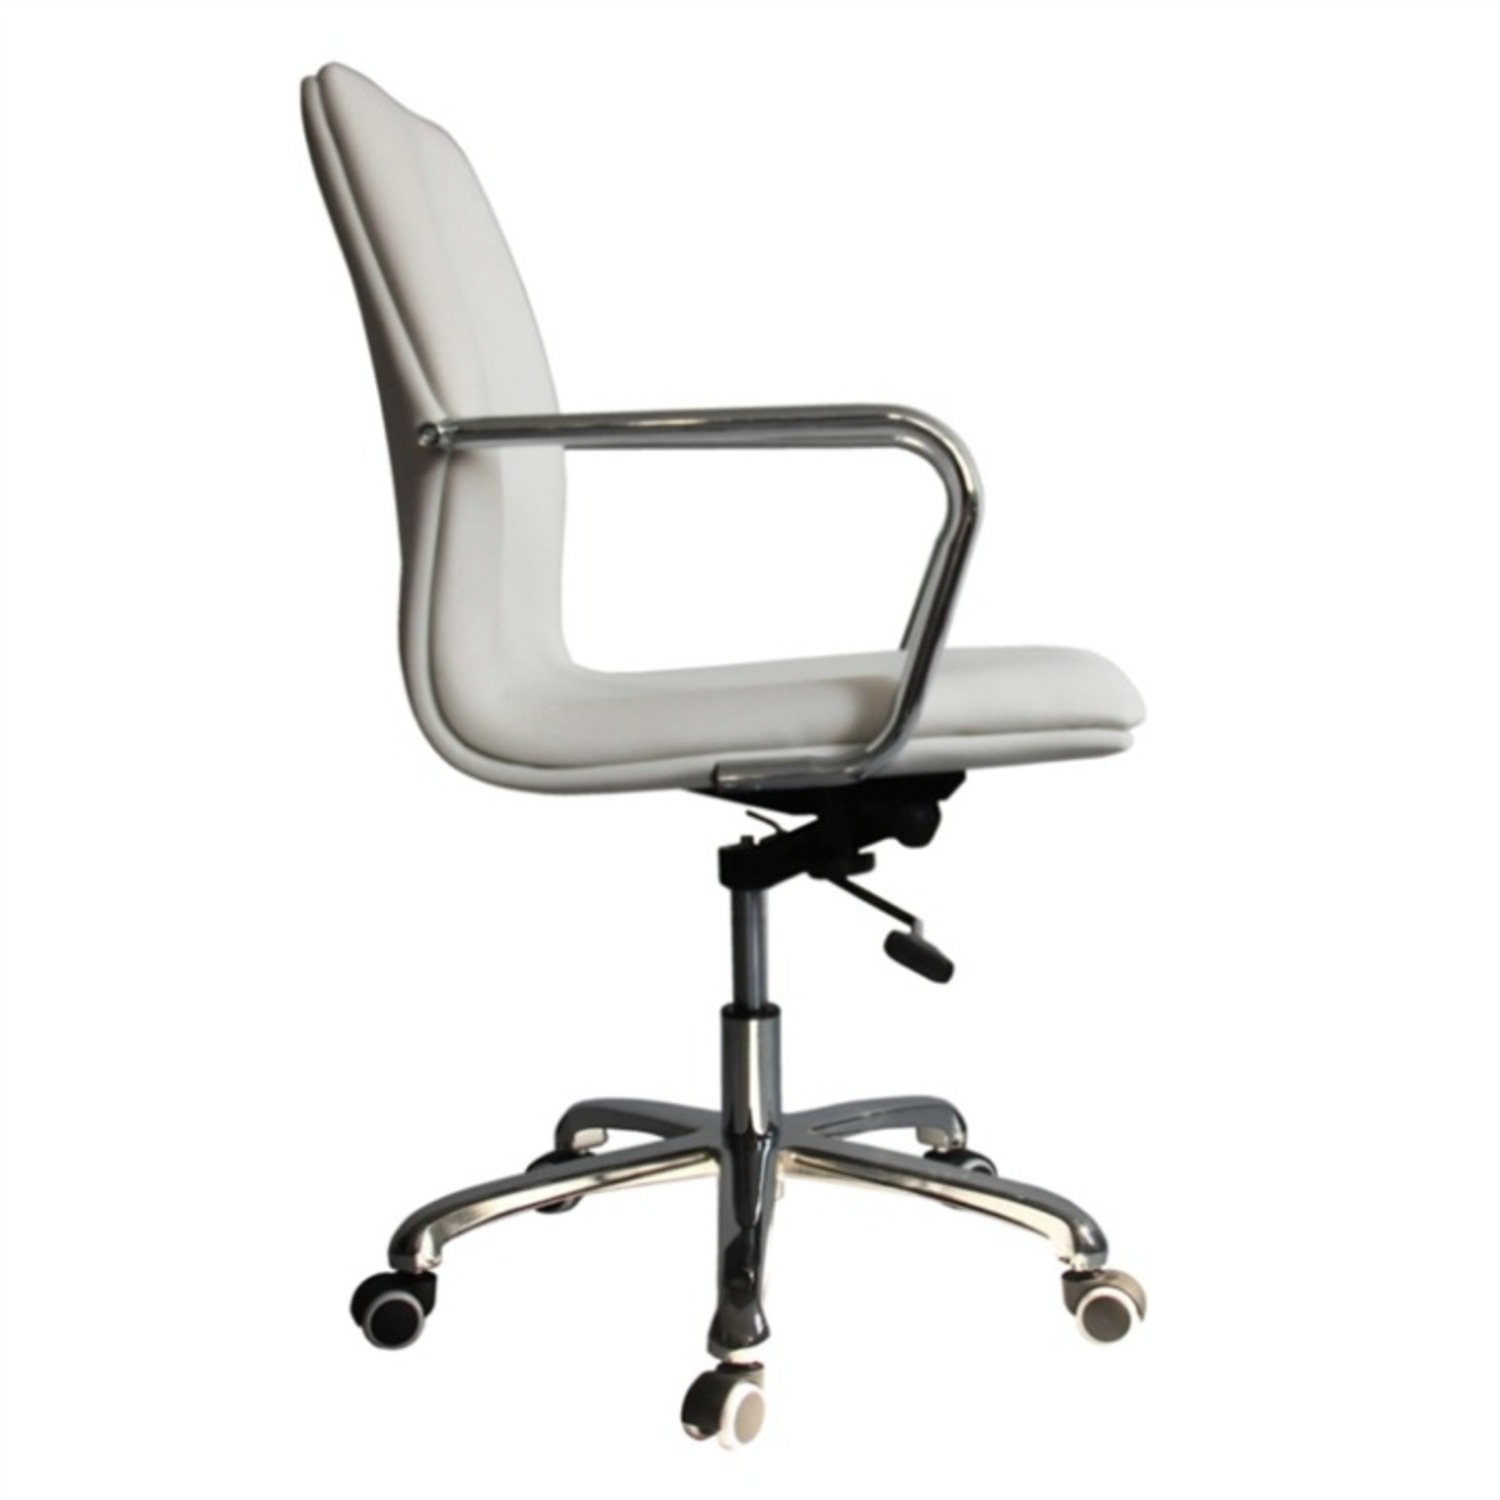 Office Chair In Mid-Back White Leatherette Finish - image-0